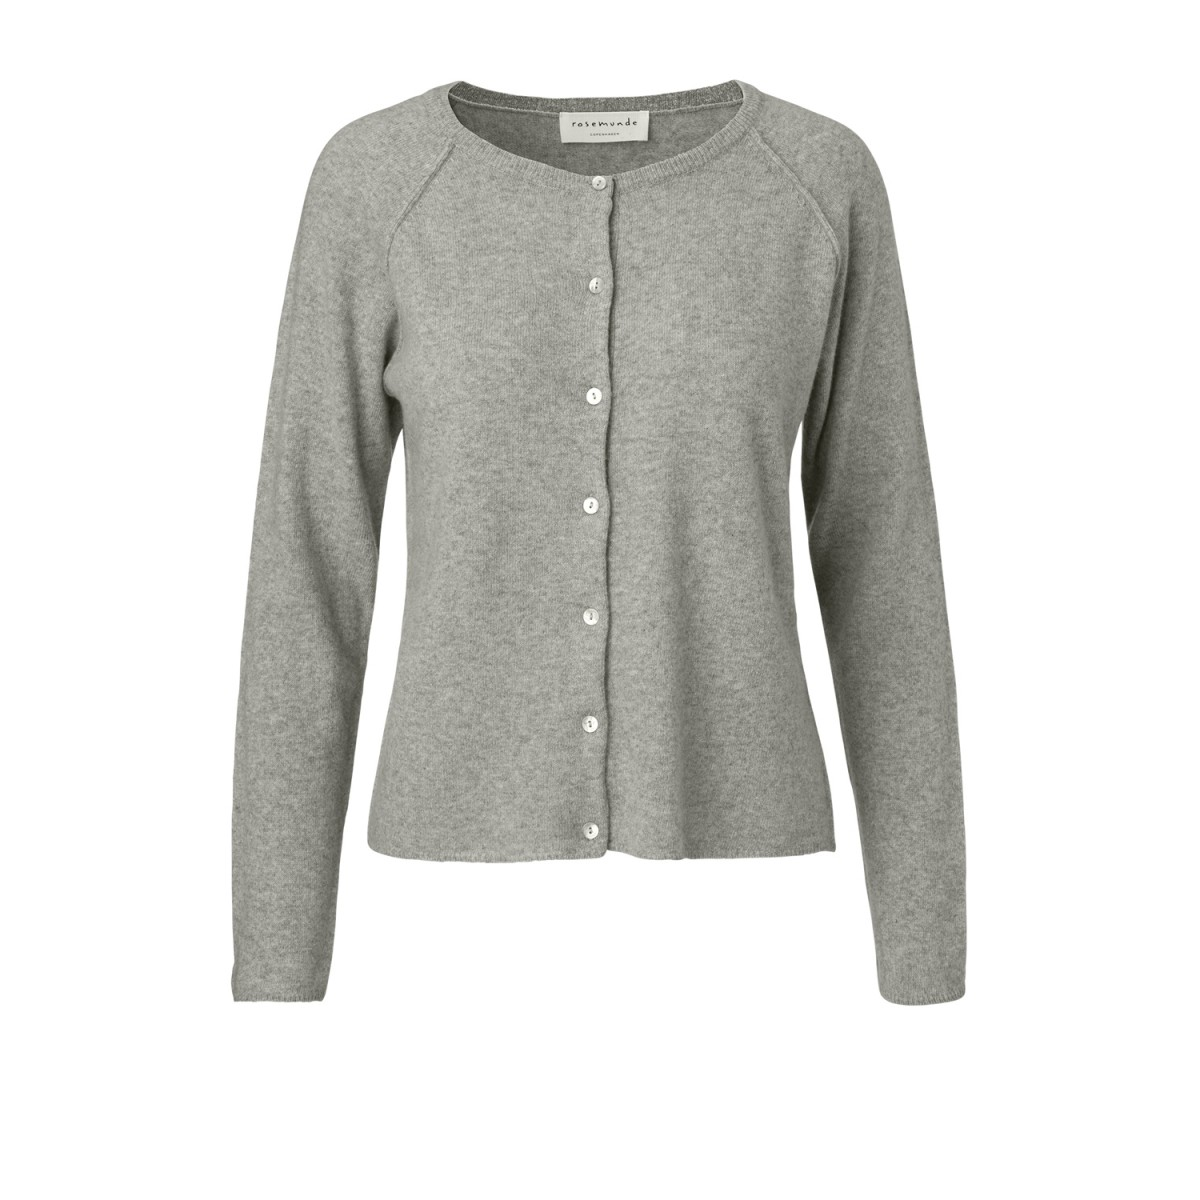 Rosemunde 1421-008 Cardigan Light Grey Melange-35